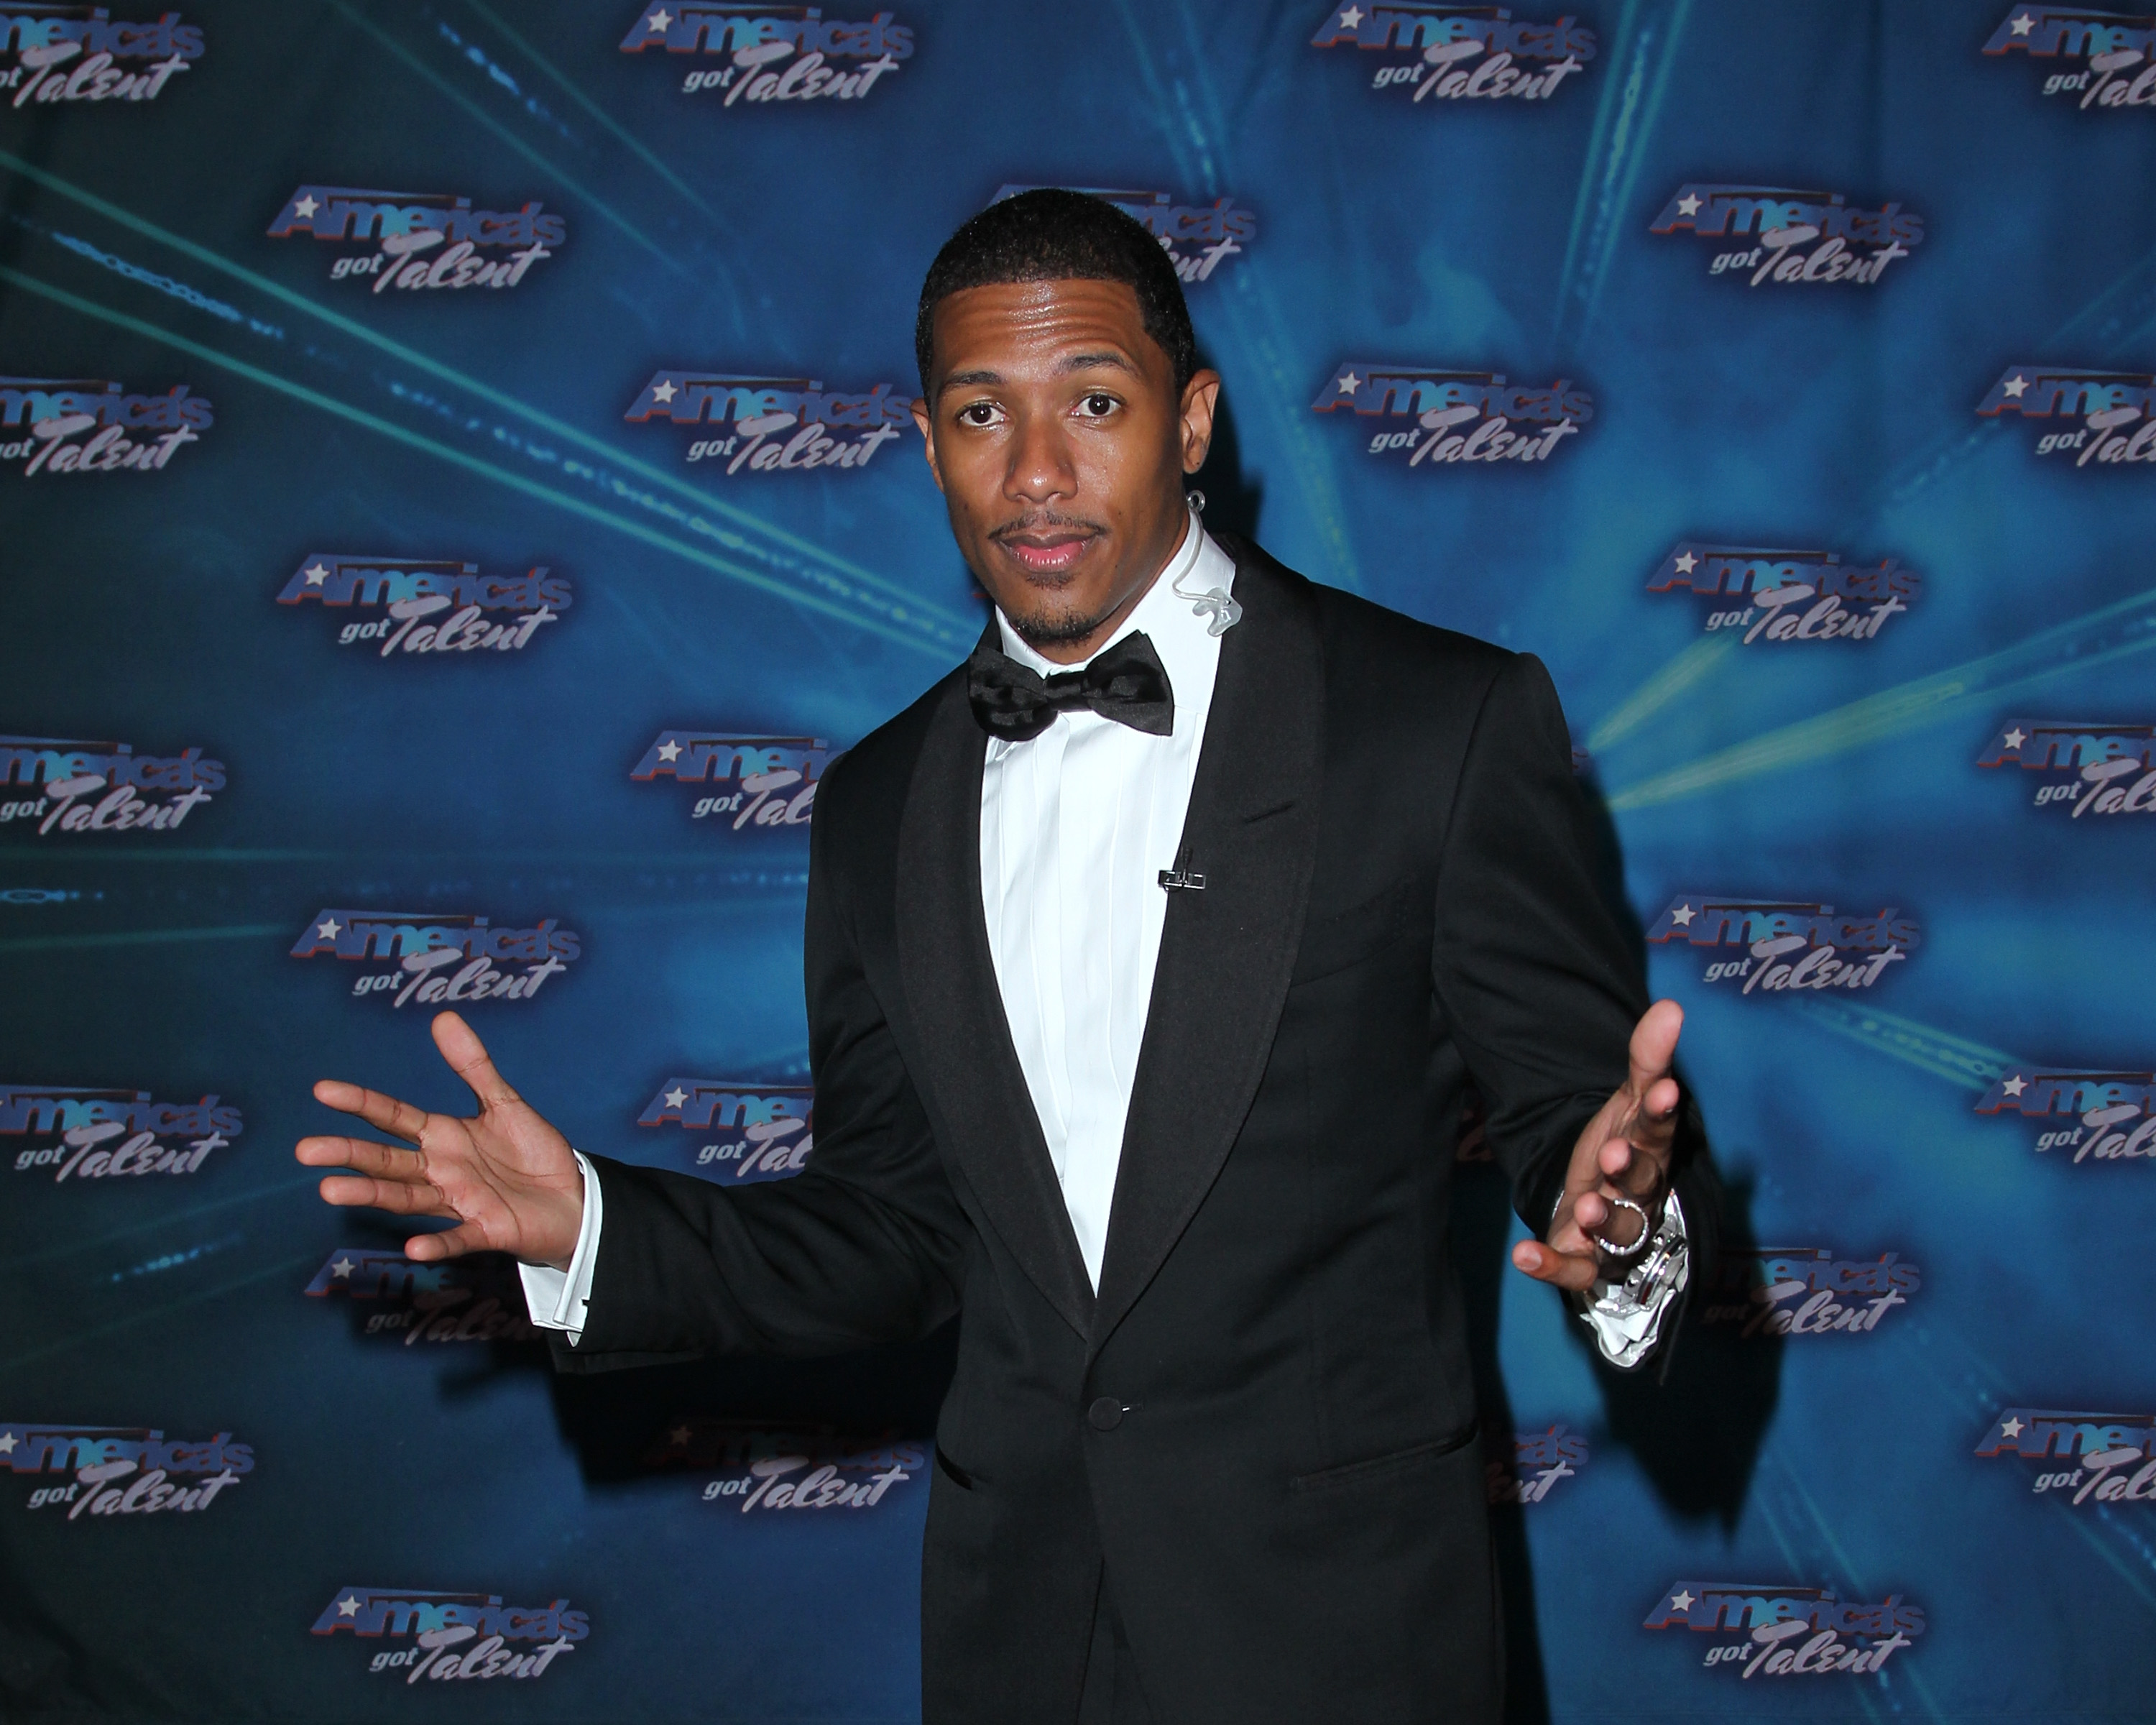 Why Did Nick Cannon Leave AGT? Find out Why He Isn't Hosting!